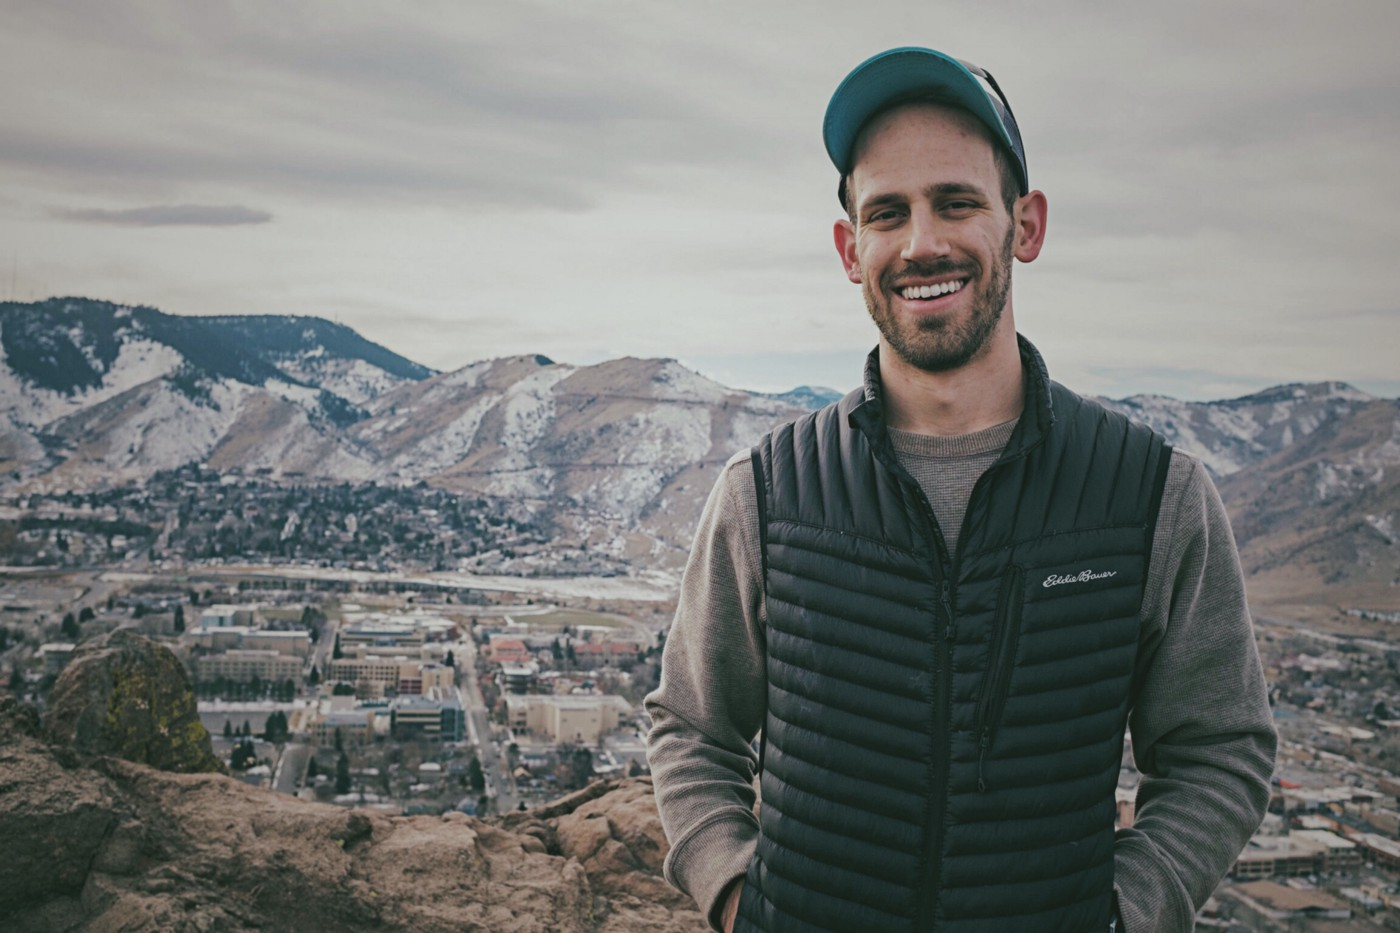 Cameron Naish standing in front of mountains in winter in Golden, Colorado.